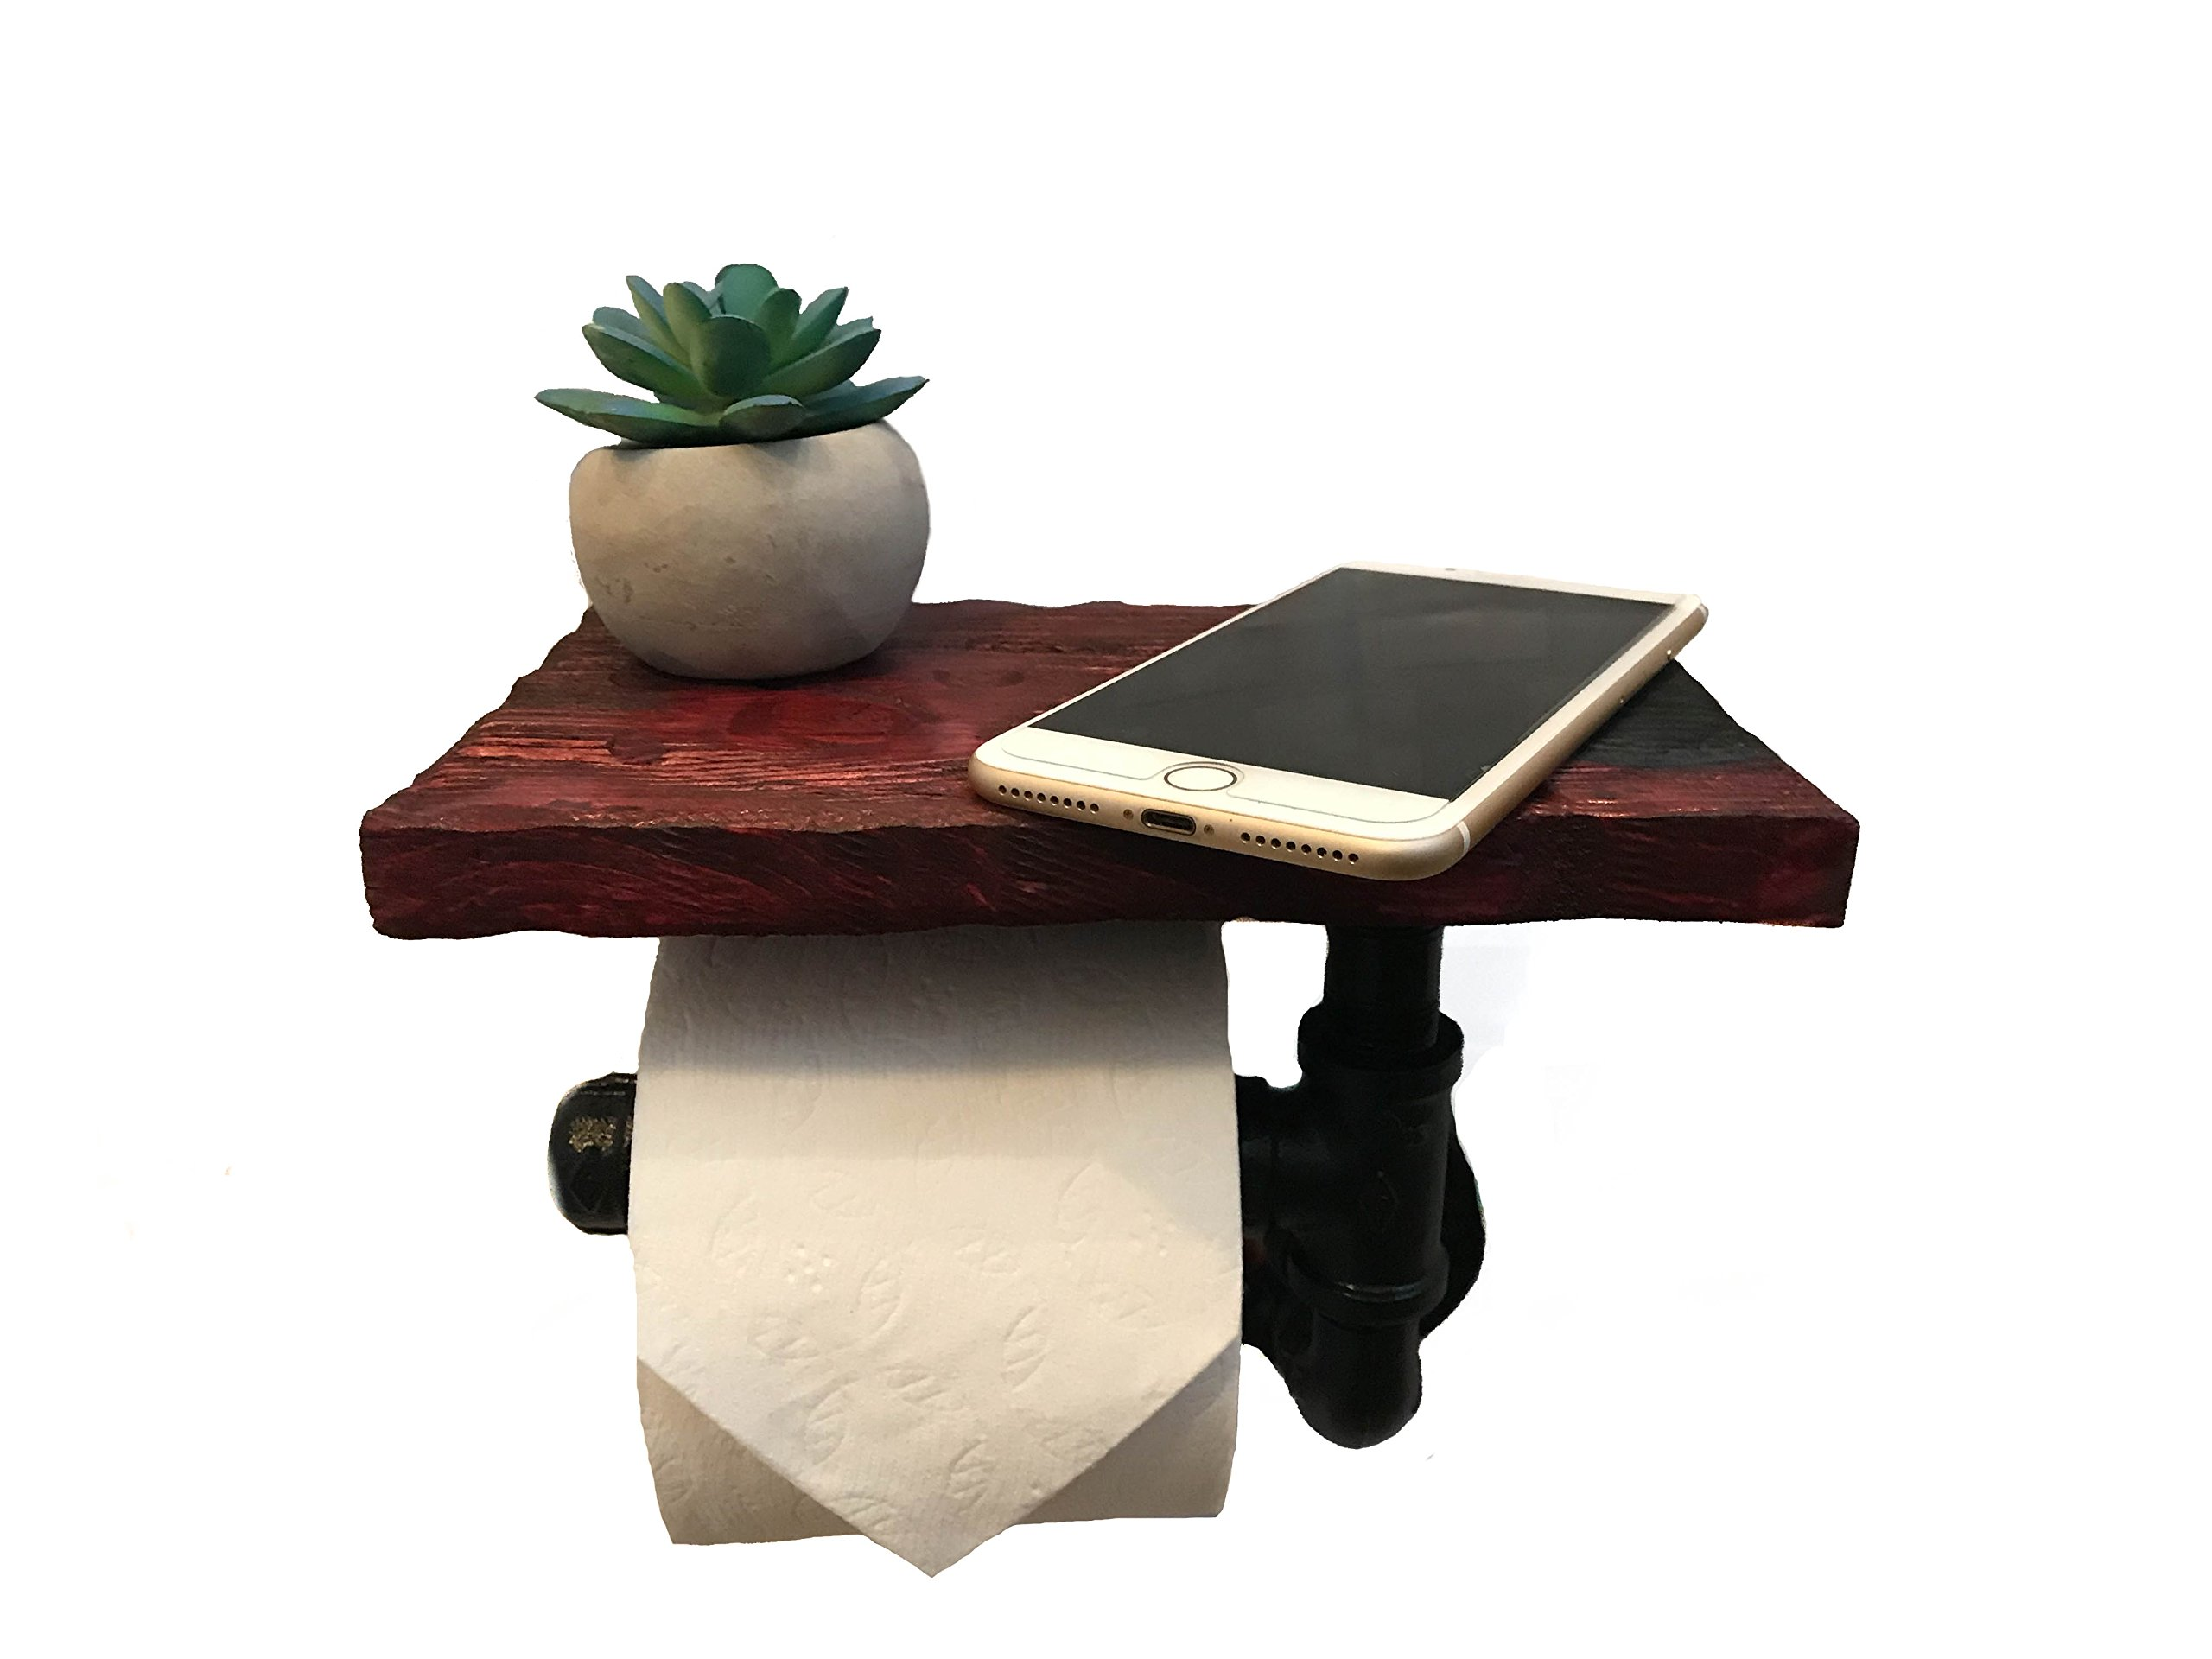 Toilet Paper Holder with Cell Phone Shelf - Toilet Paper Dispenser with 5 Color Options (Cherry Walnut)